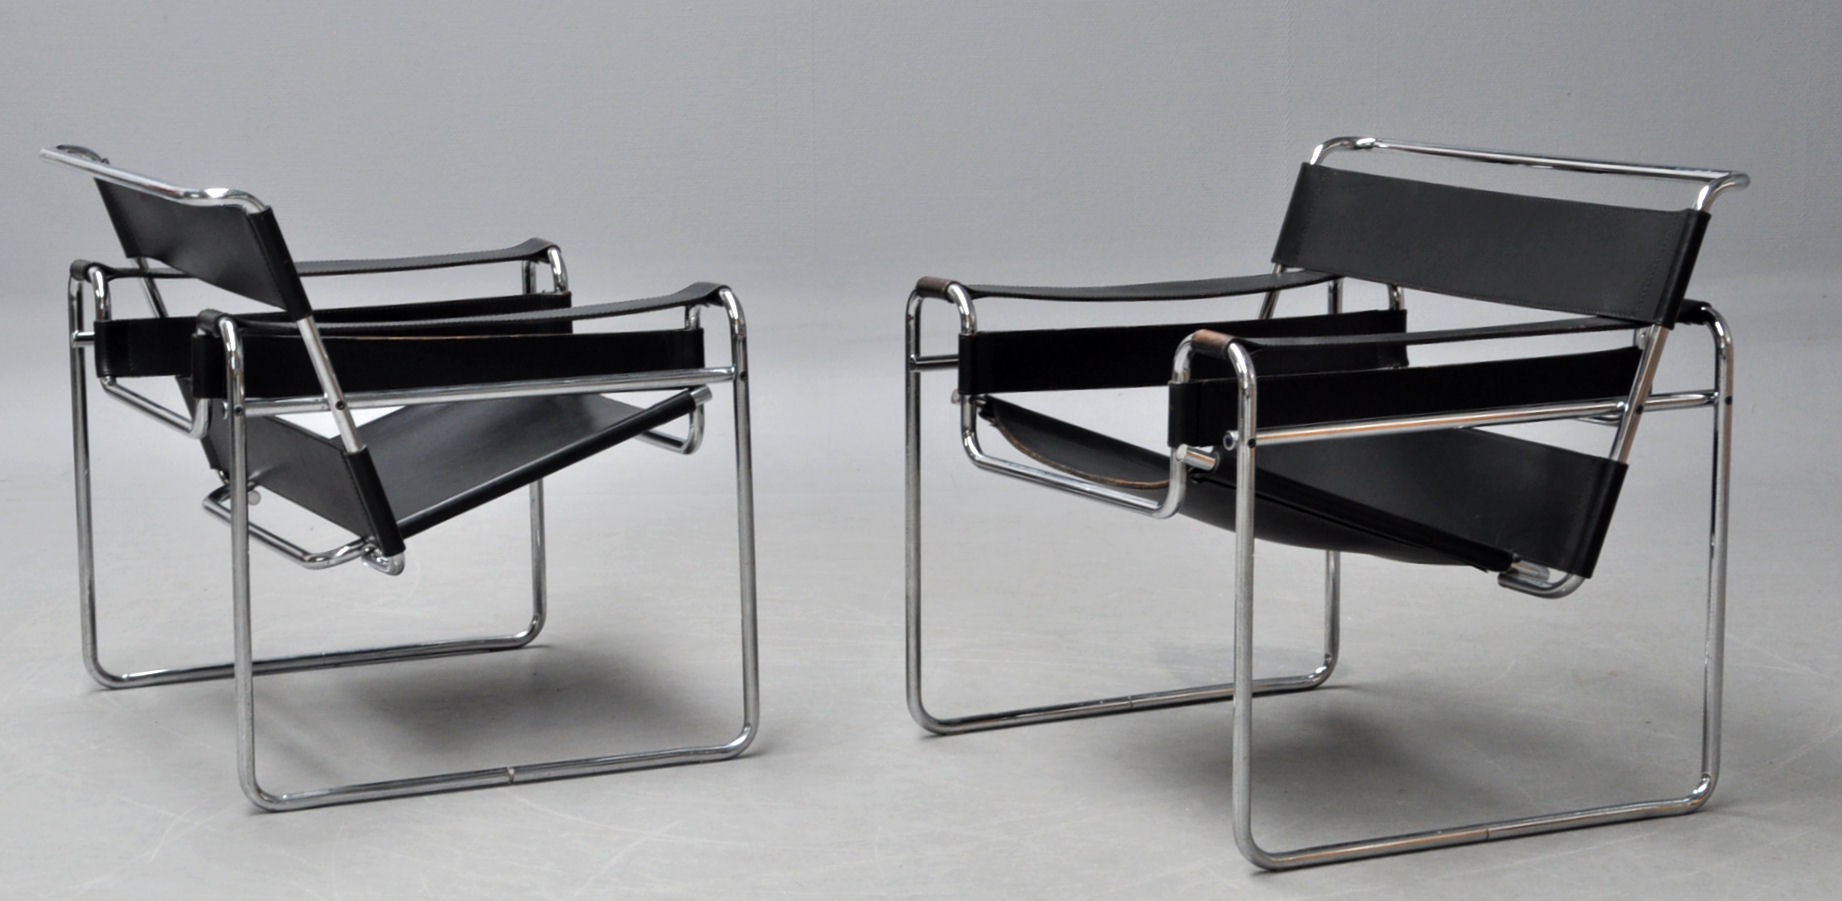 marcel breuer chair original movie theater chairs for sale auktionstipset